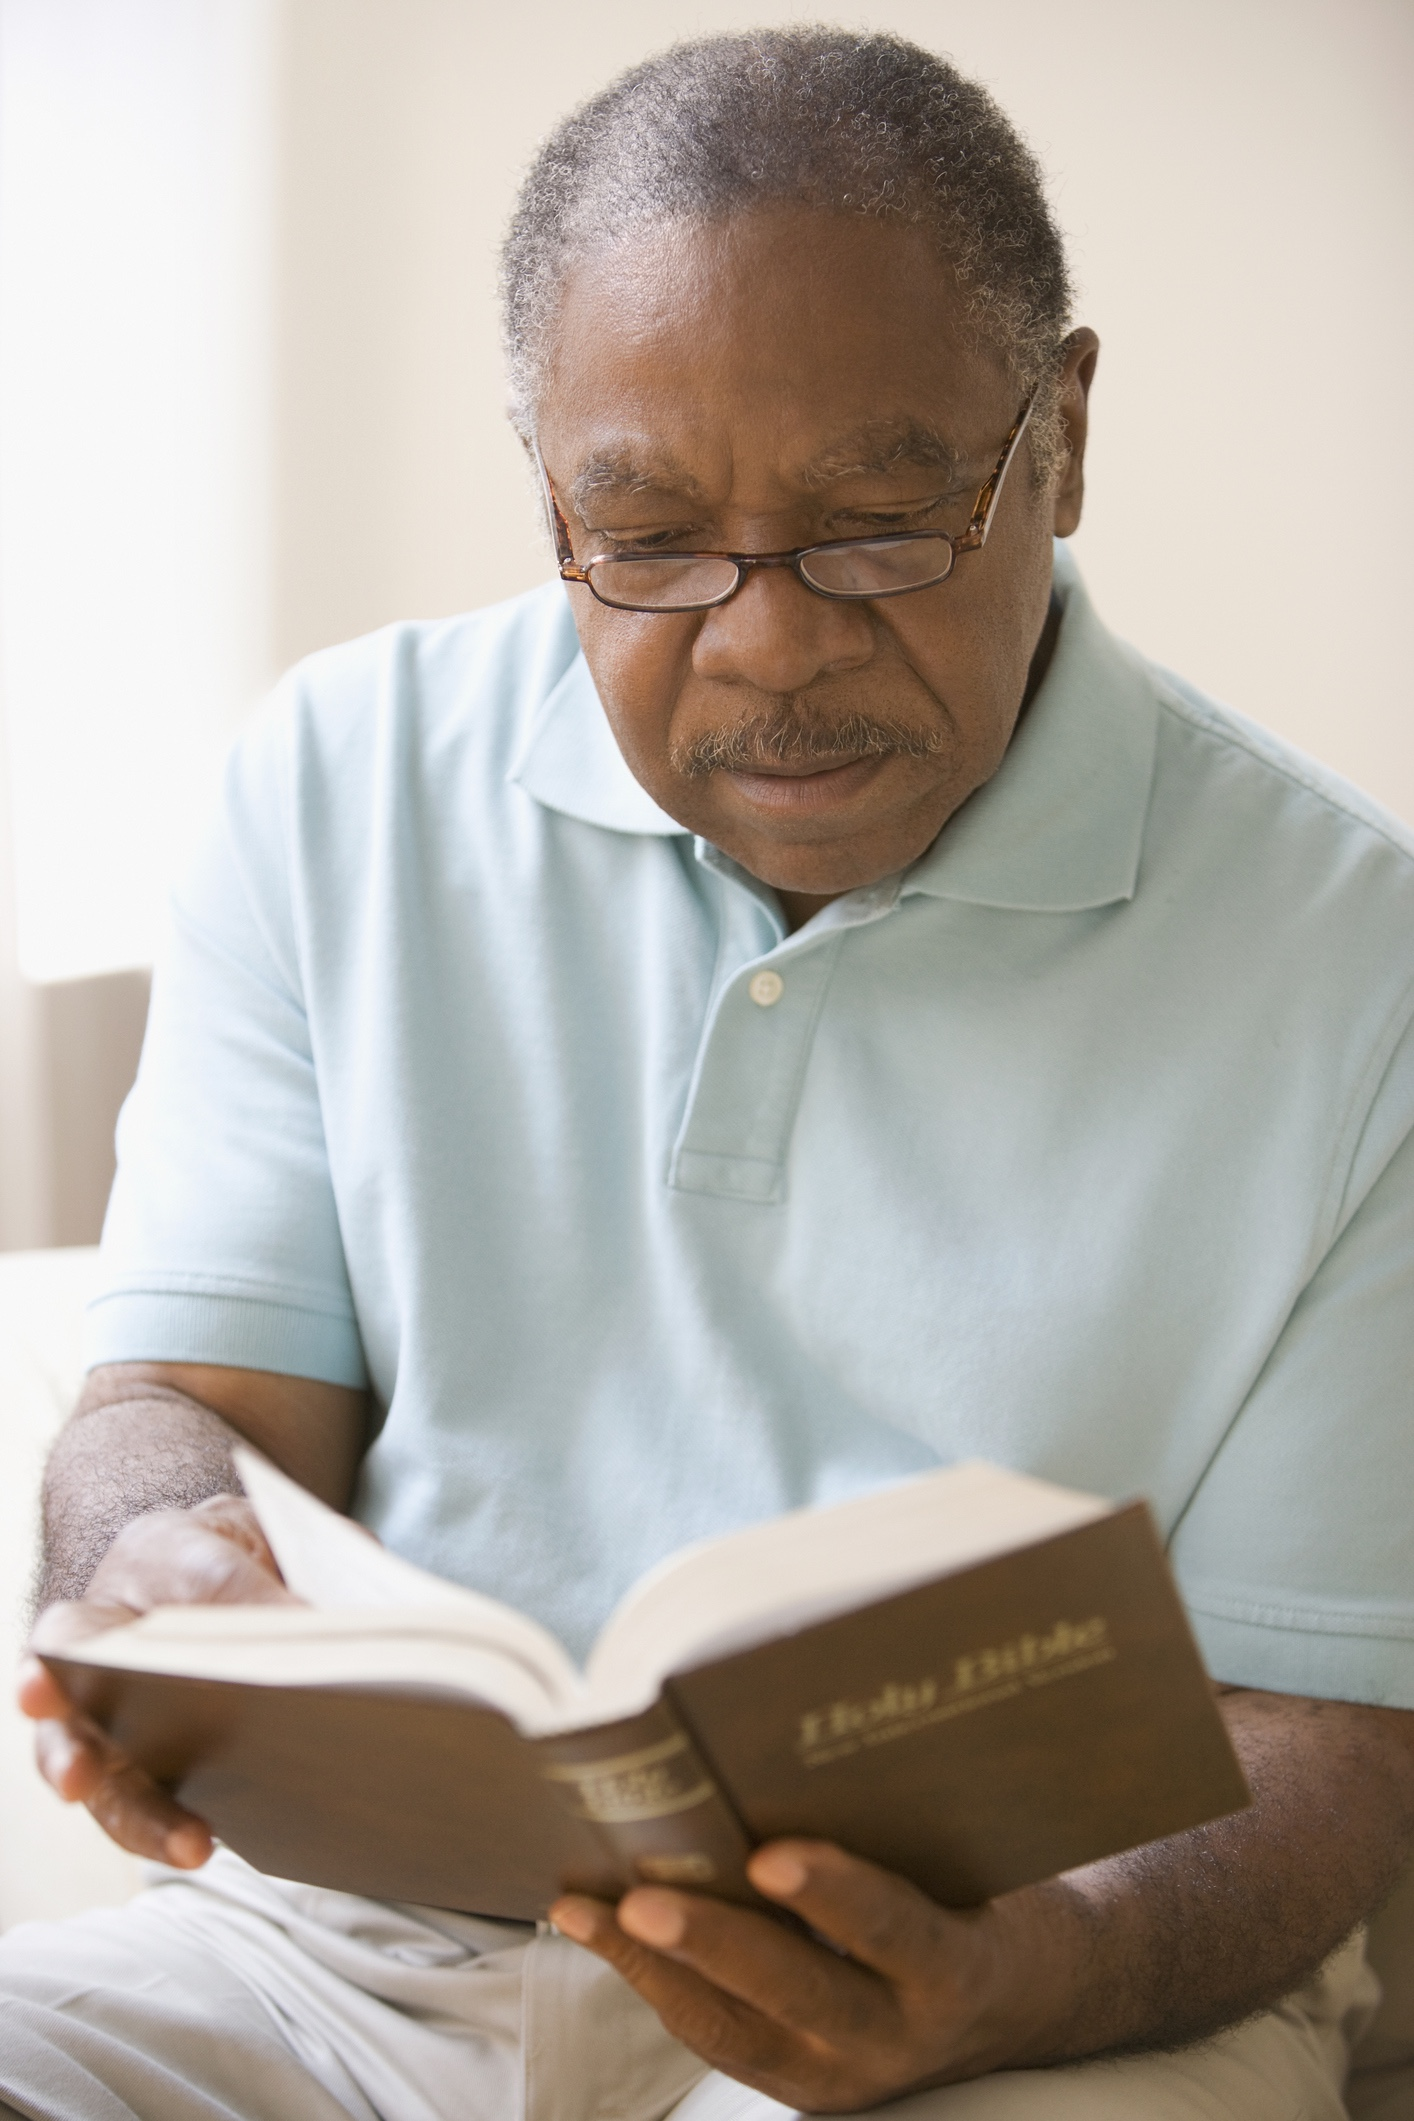 An older man reading a Bible.